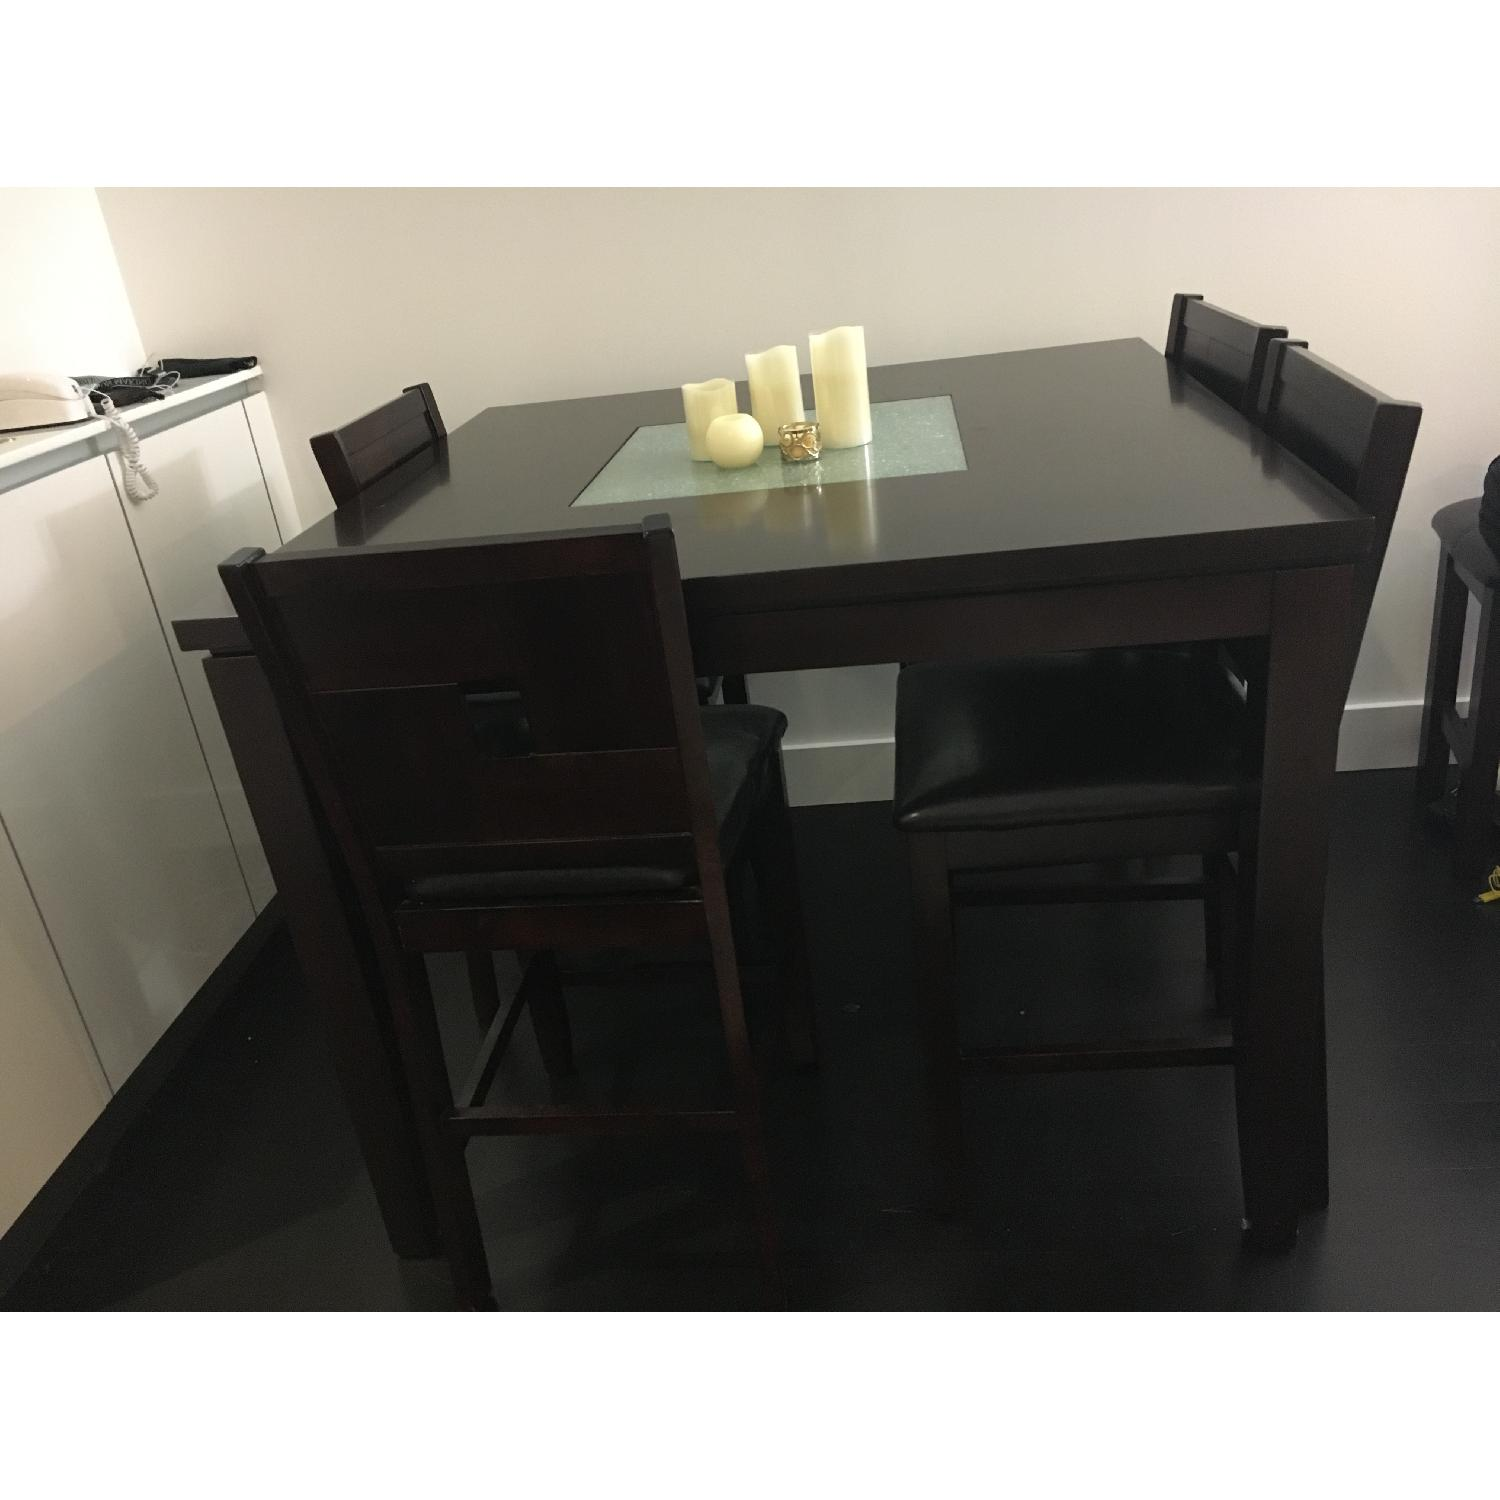 Dining Table w/ 4 Chairs + 1 Bench - image-2